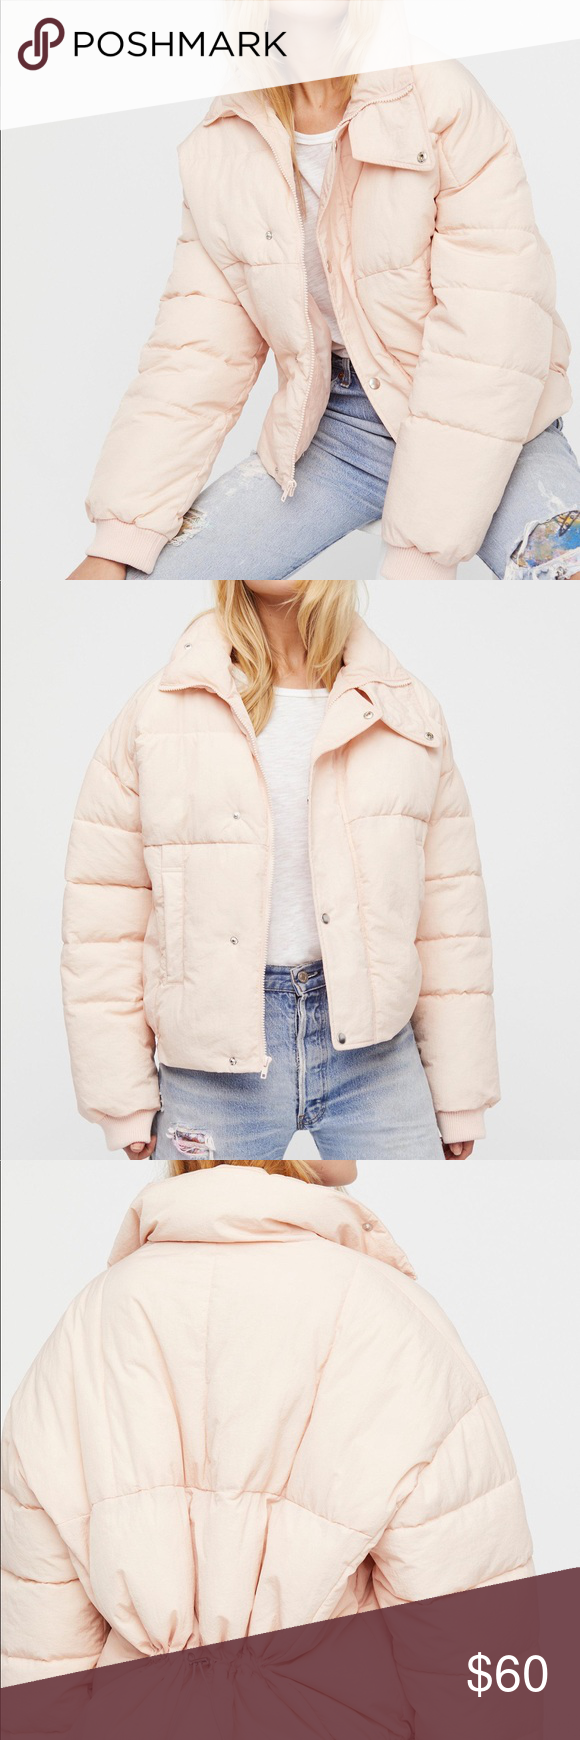 Free People Cold Rush Puffer Pink Puffer Jacket Free People Jacket Puffer [ 1740 x 580 Pixel ]